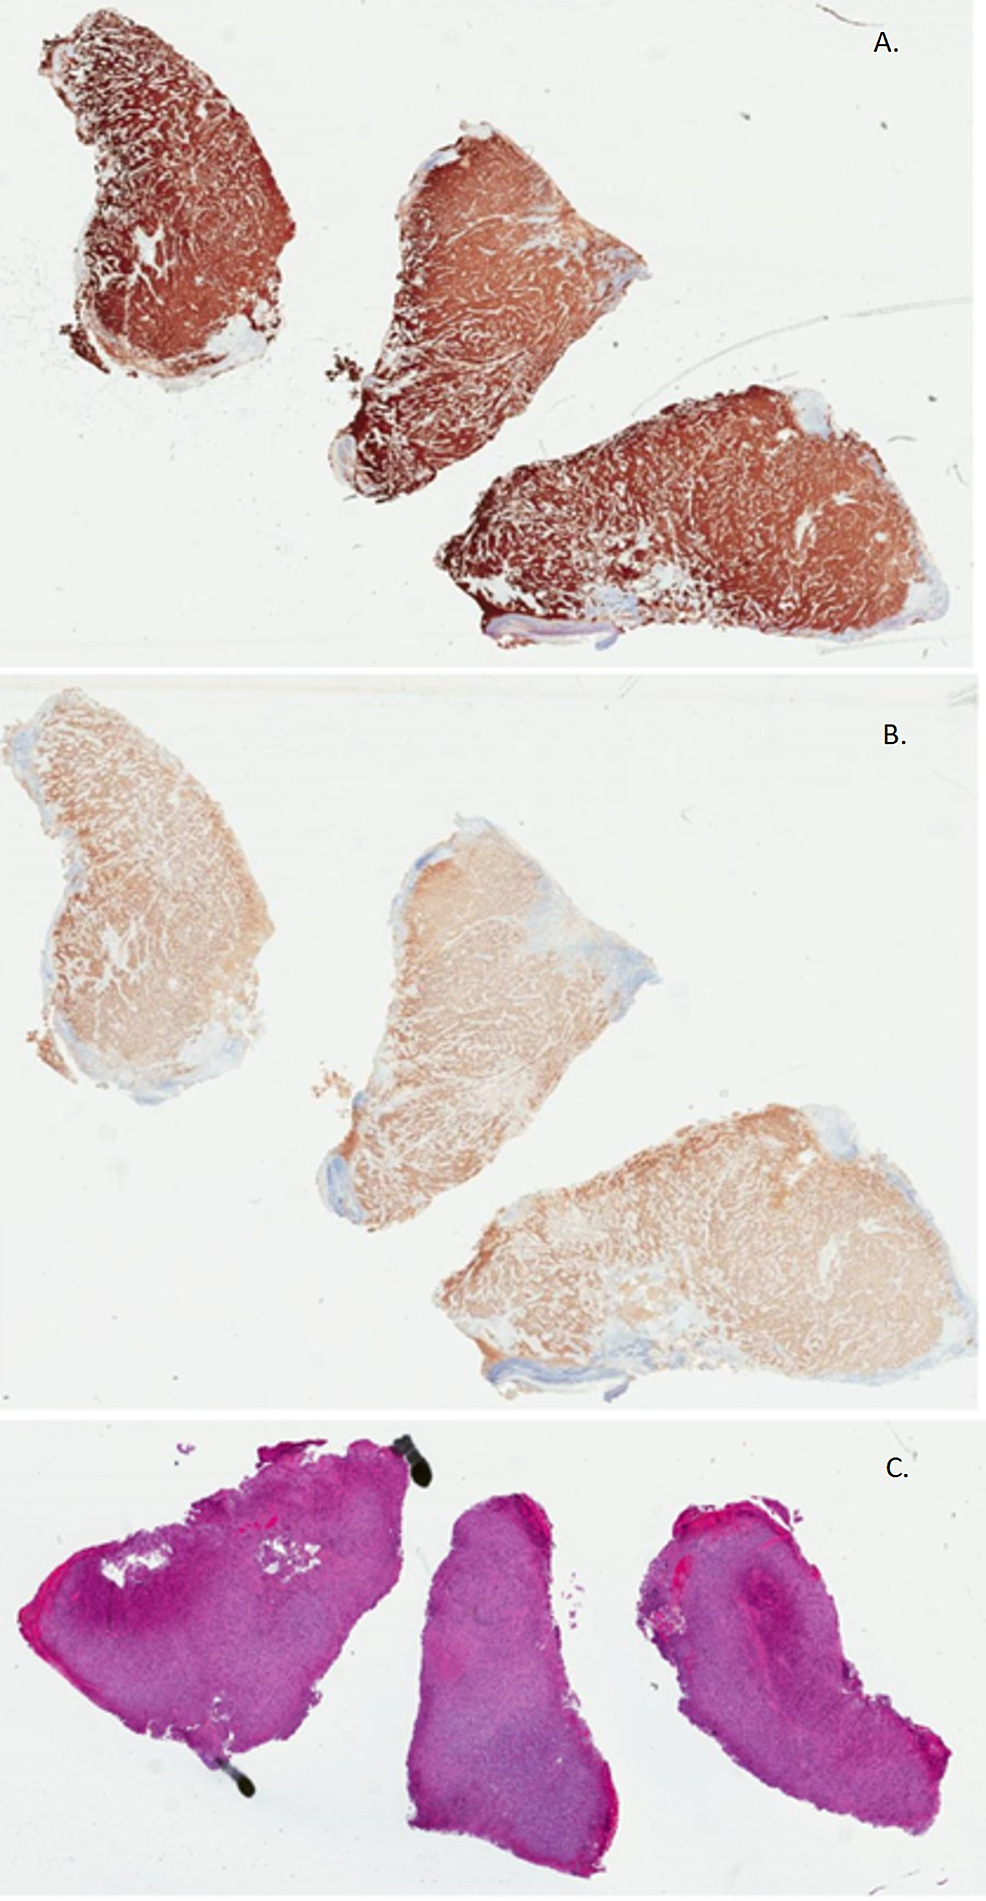 Biopsy-of-the-mass-confirming-nodular-melanoma-with-a-Breslow-thickness-of-10.1-mm,-Clark-level-IV,-stage-pT4b,-mitotic-rate-of-3-mitoses/mm².